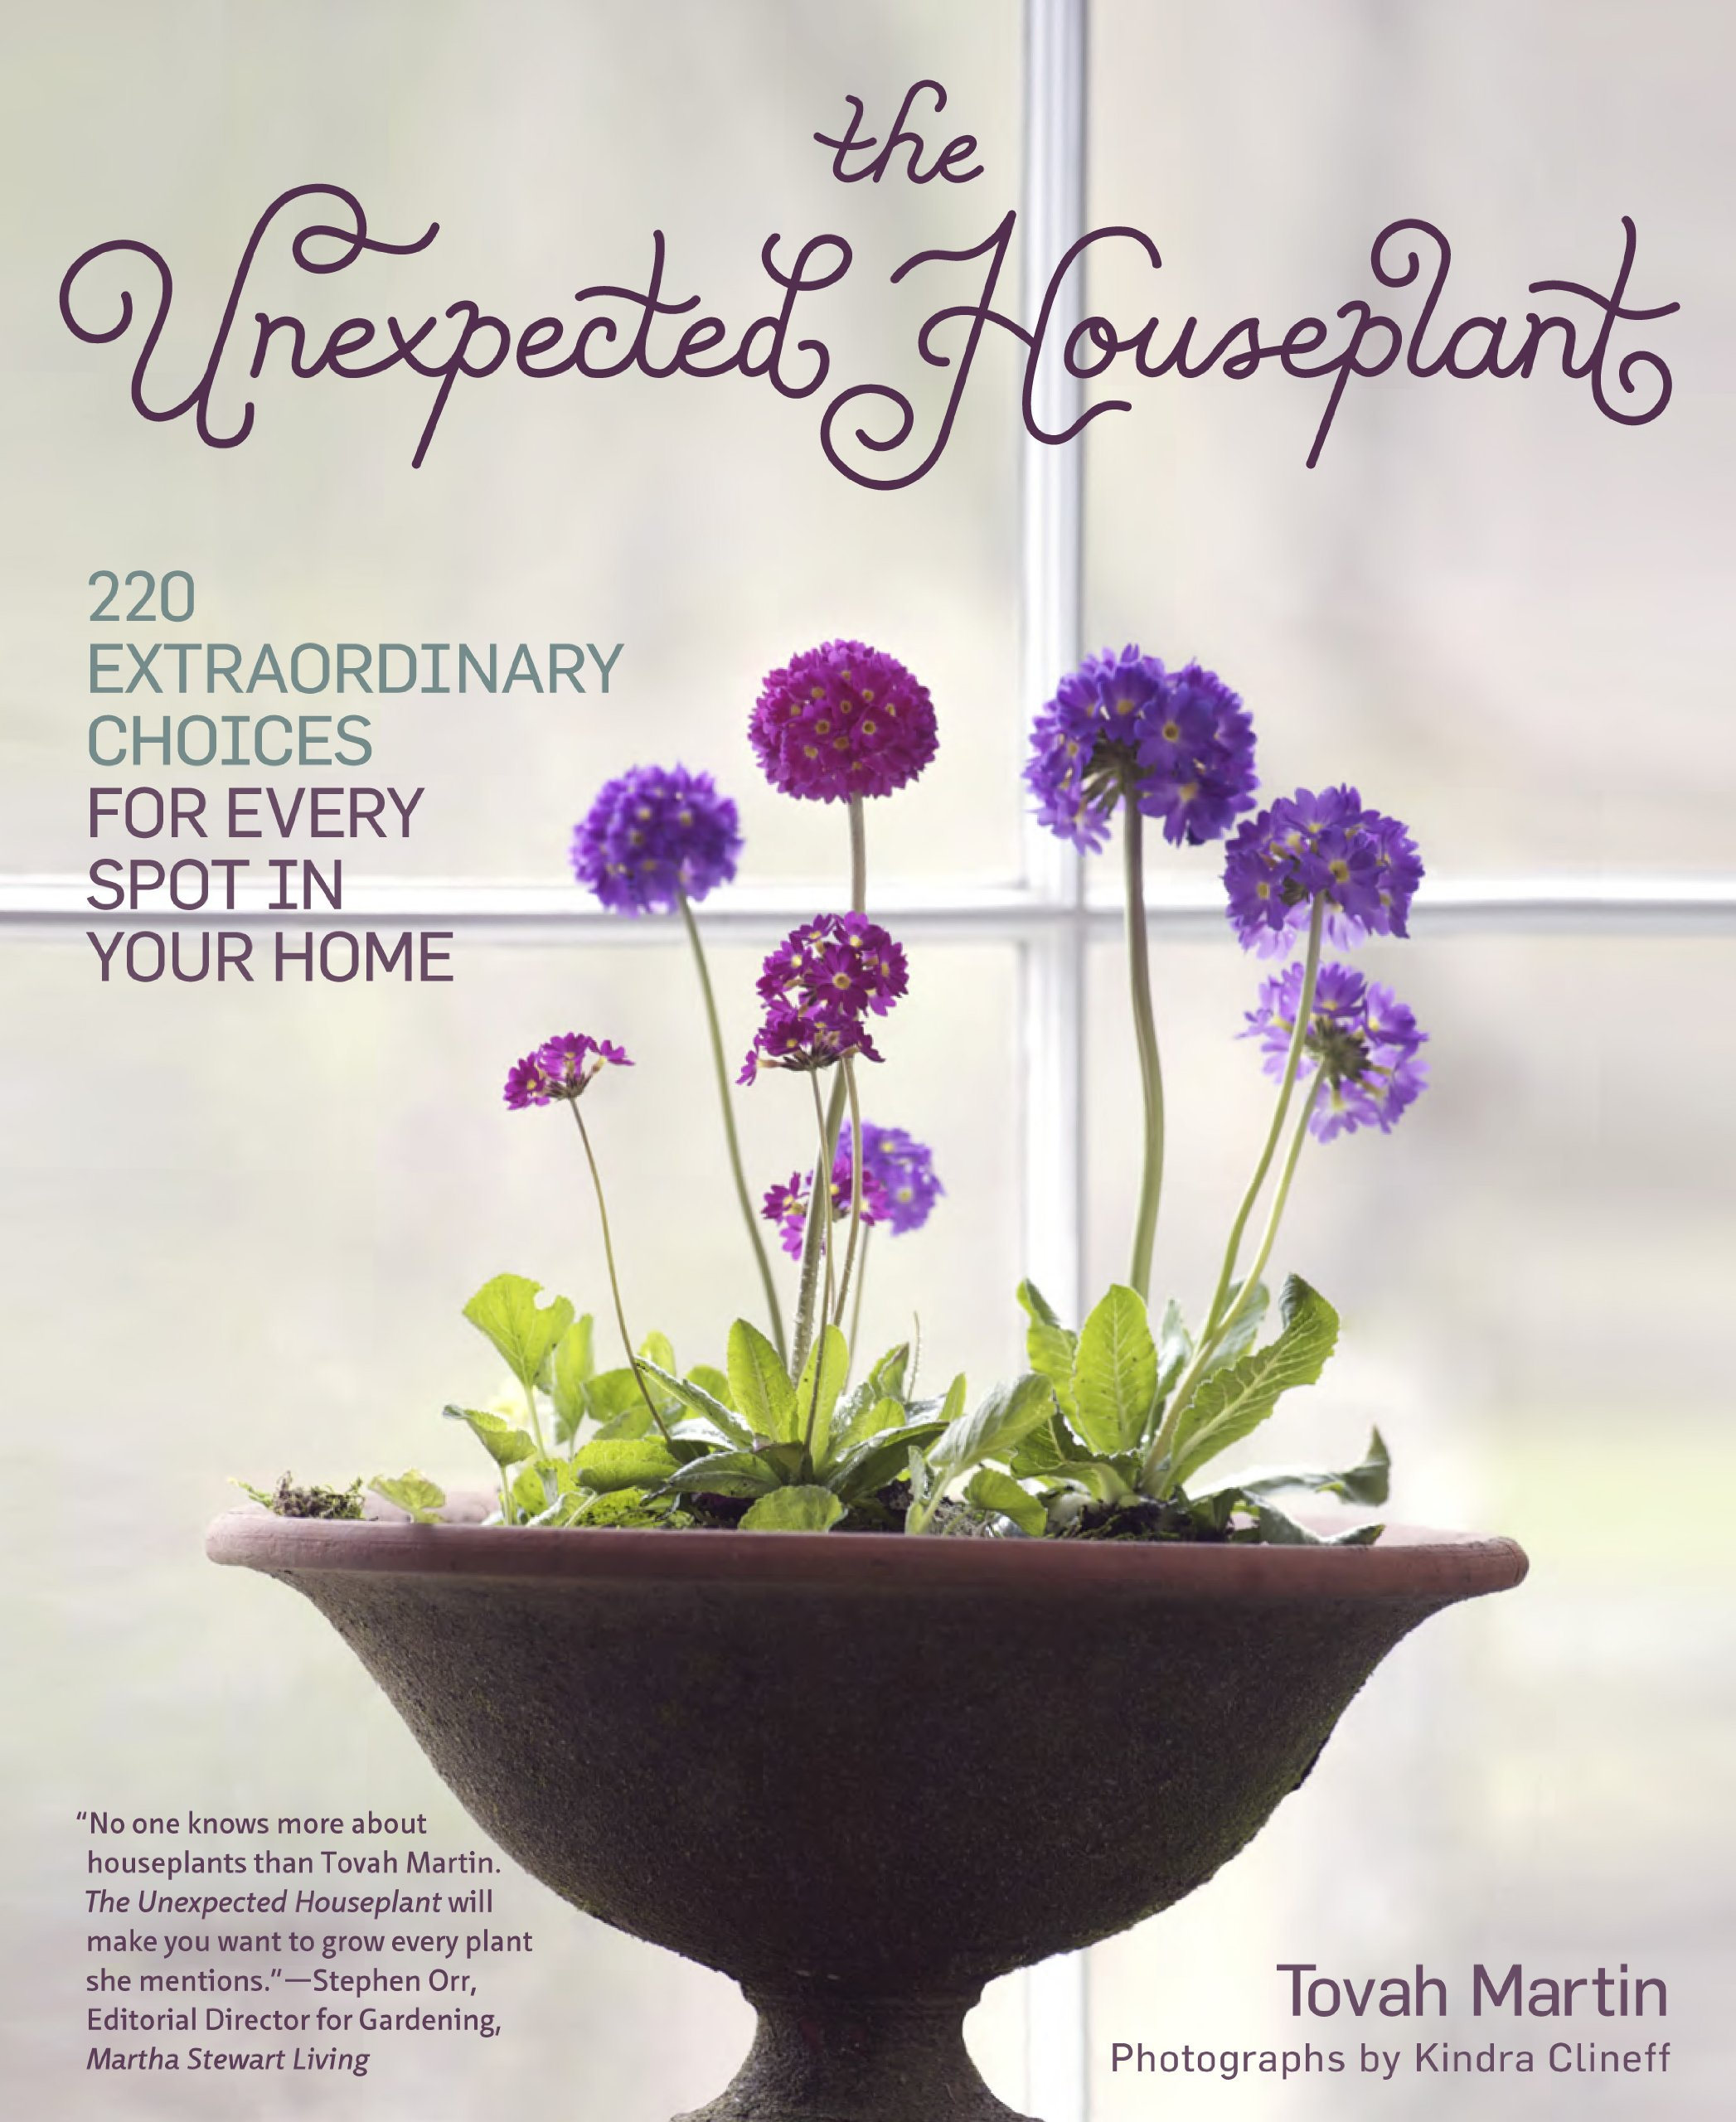 amazoncom the unexpected houseplant 220 choices for every spot in your home tovah martin books